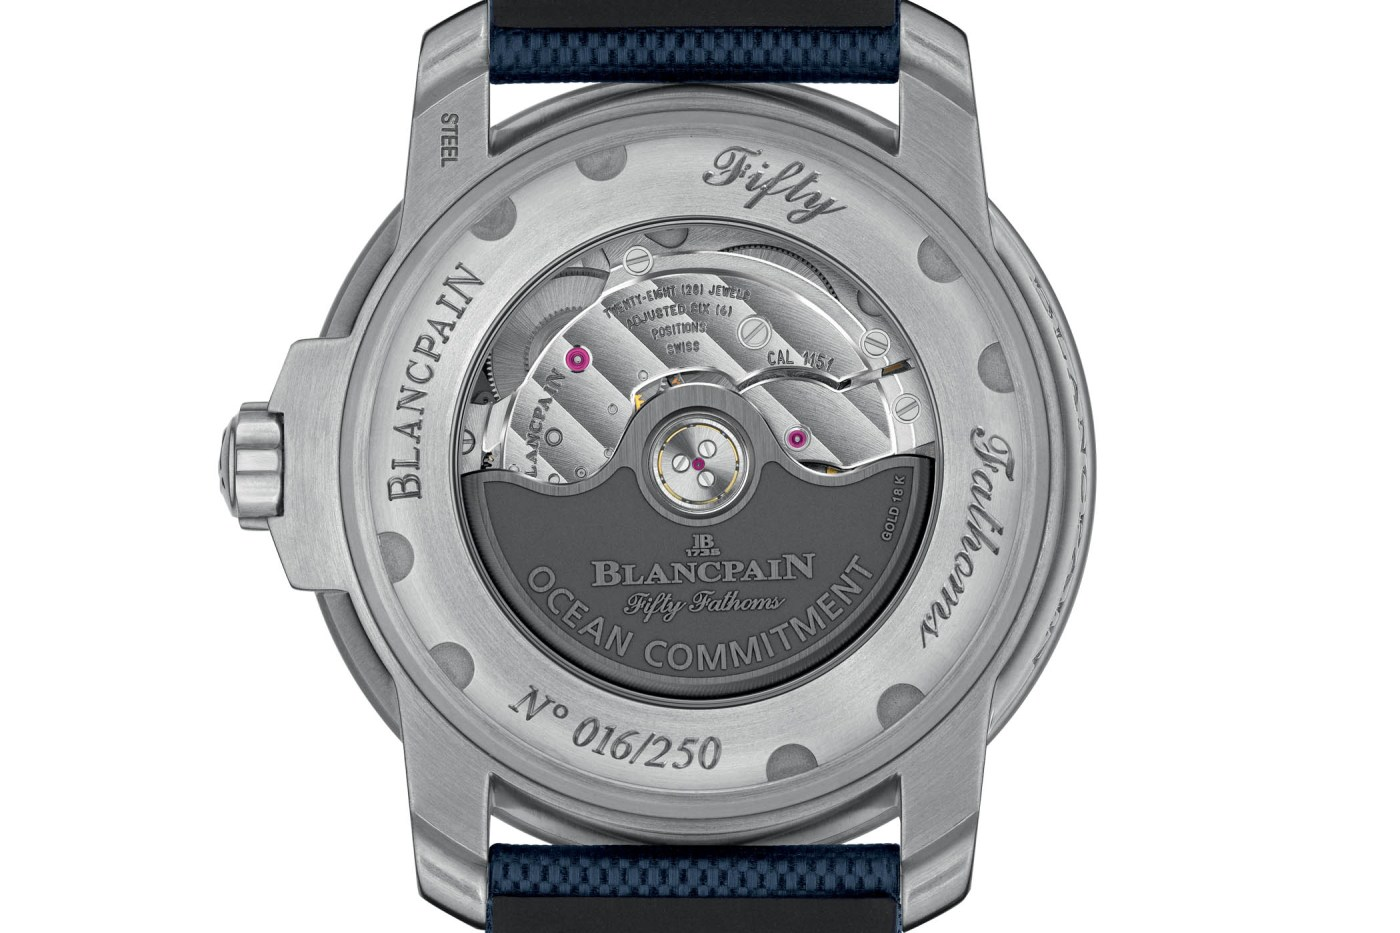 Blancpain Fifthy Fathoms Ocean Commitment III